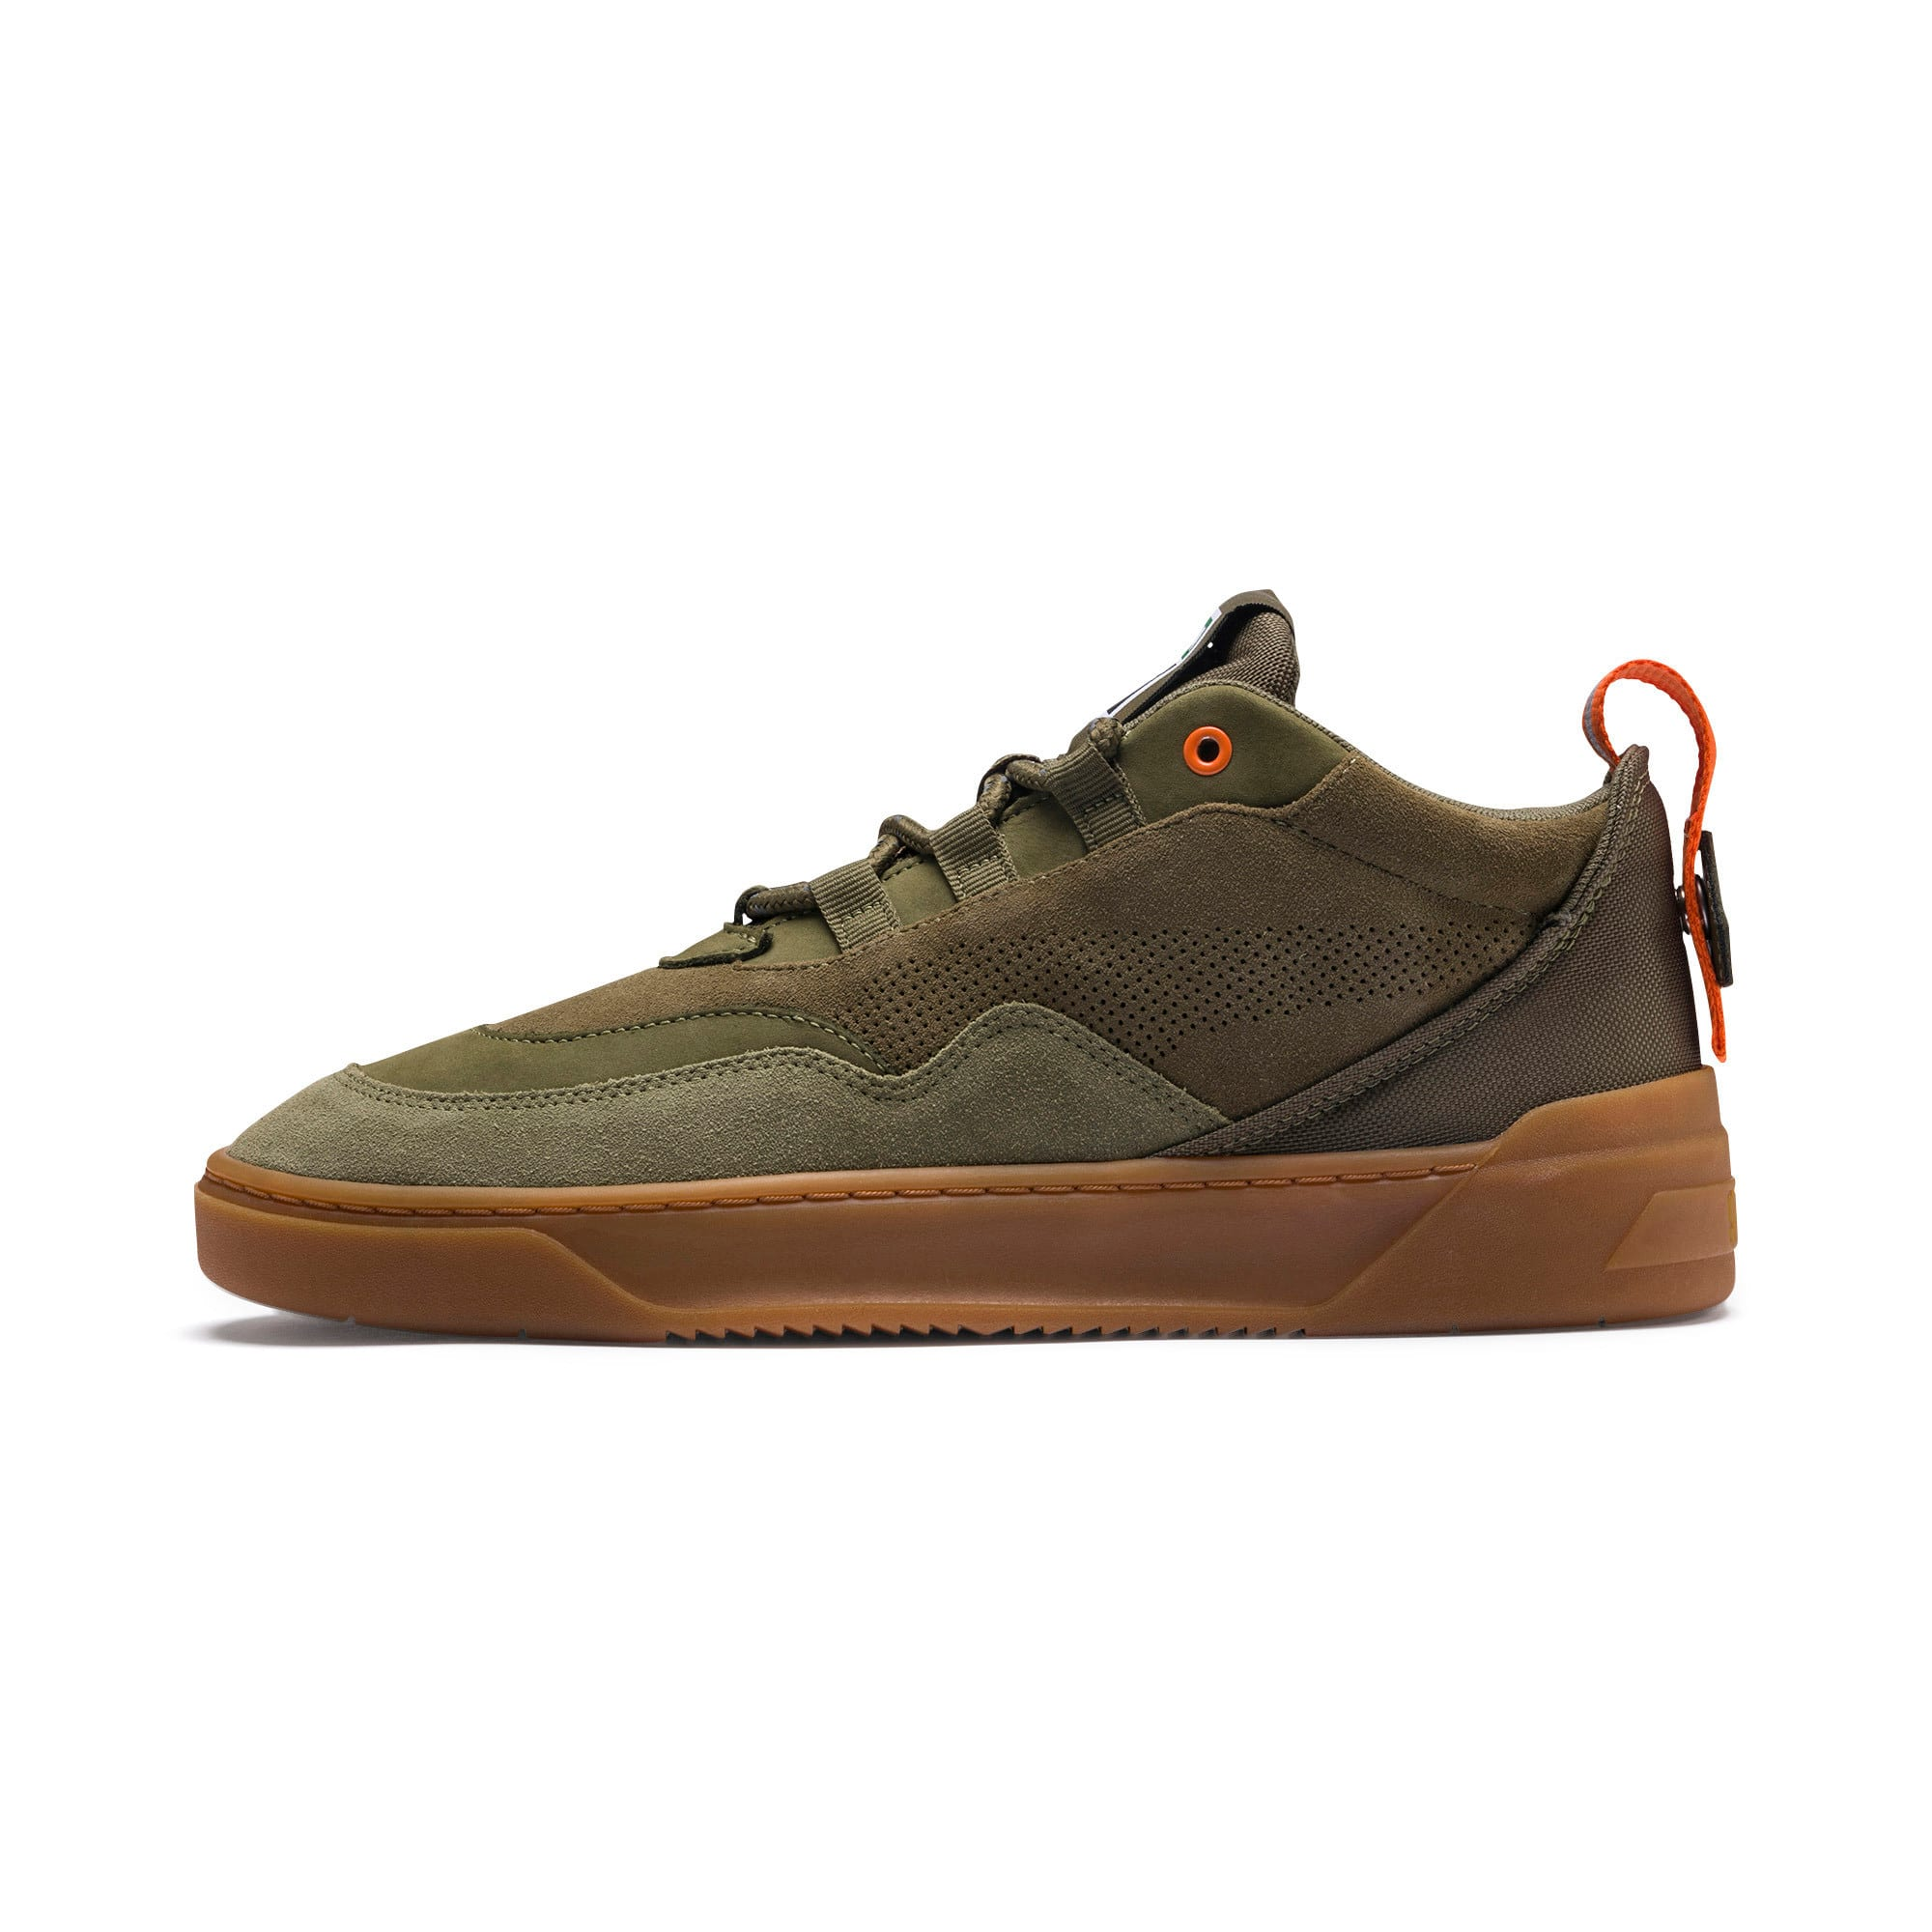 Thumbnail 1 of Cali Zero Demi Army Green Sneakers, Capulet Olive-Burnt Olive, medium